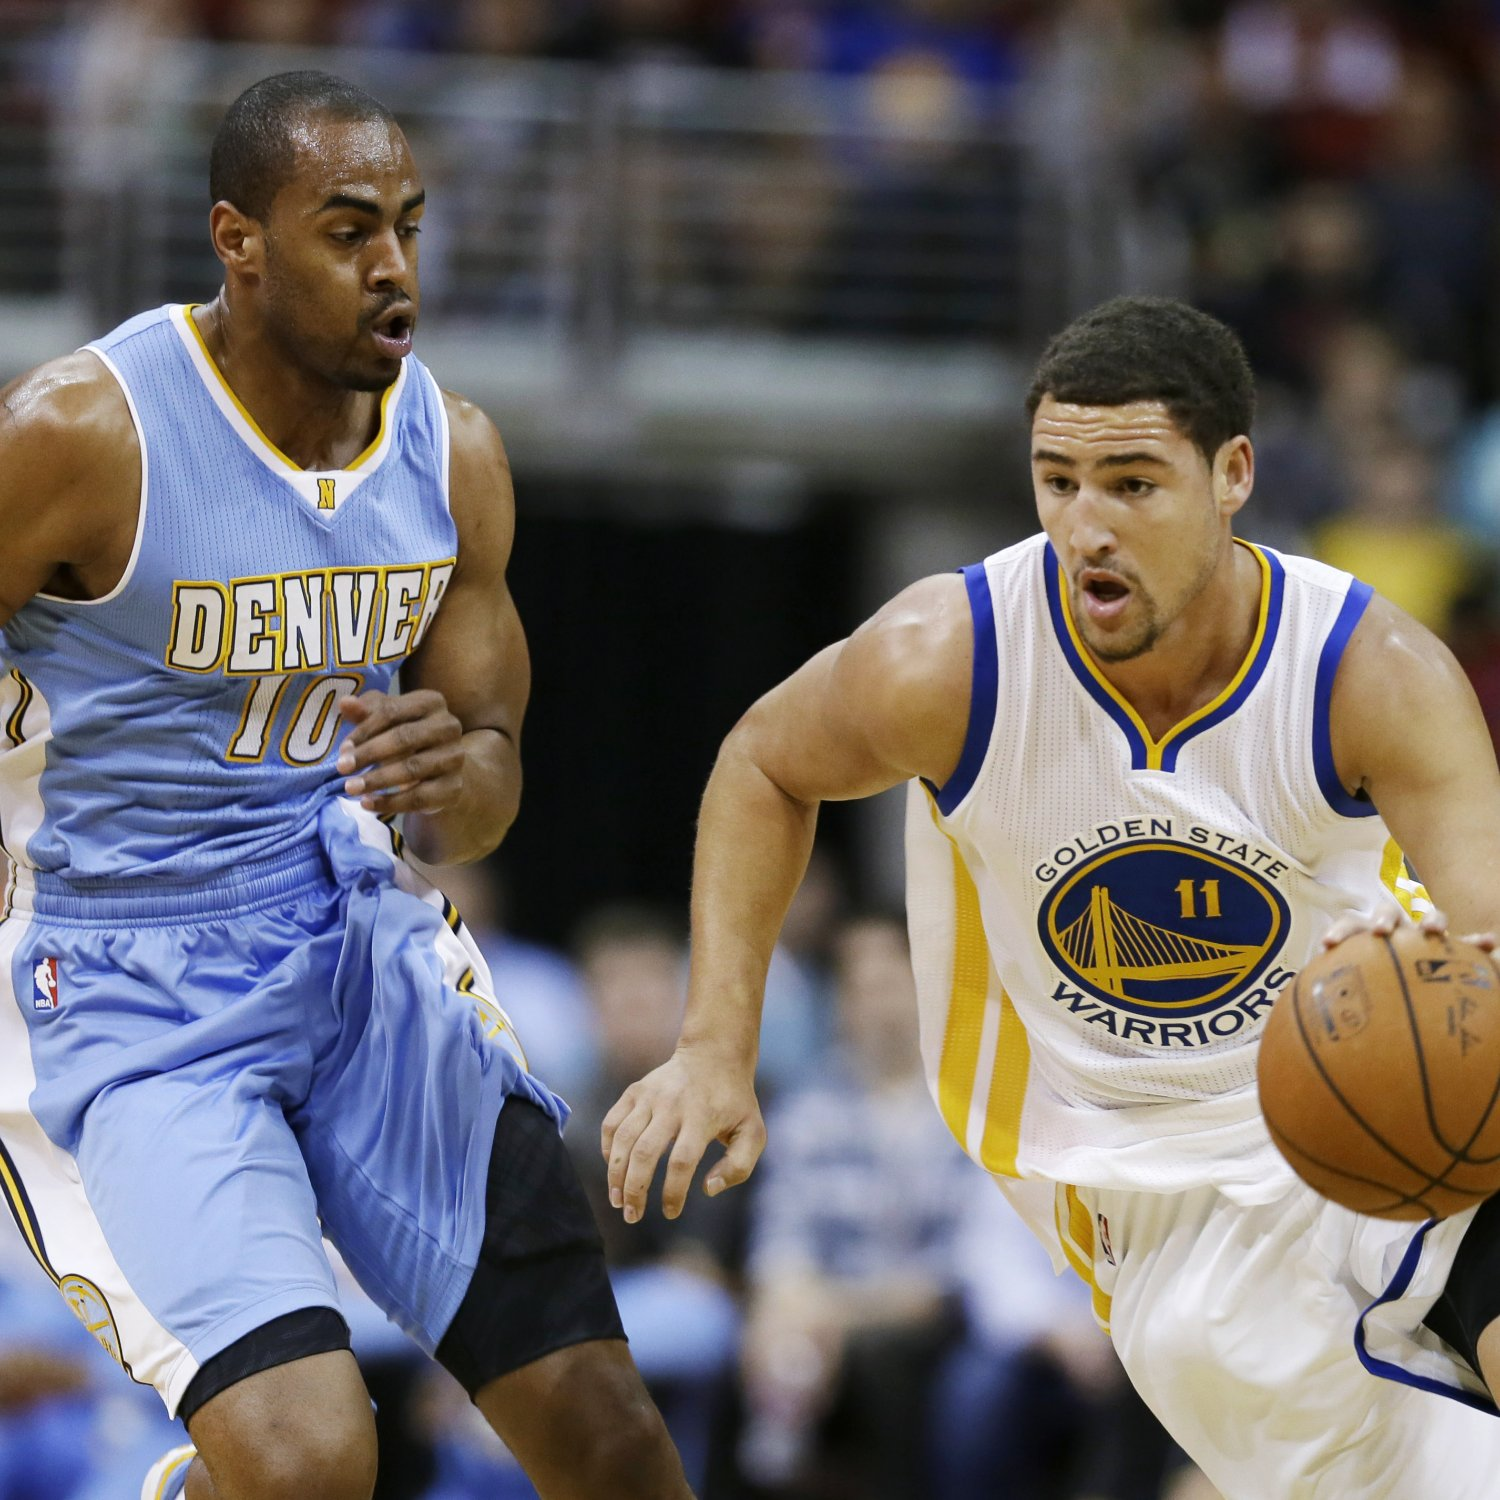 Denver Nuggets Schedule: Denver Nuggets Vs. Golden State Warriors 10/24/14: Video